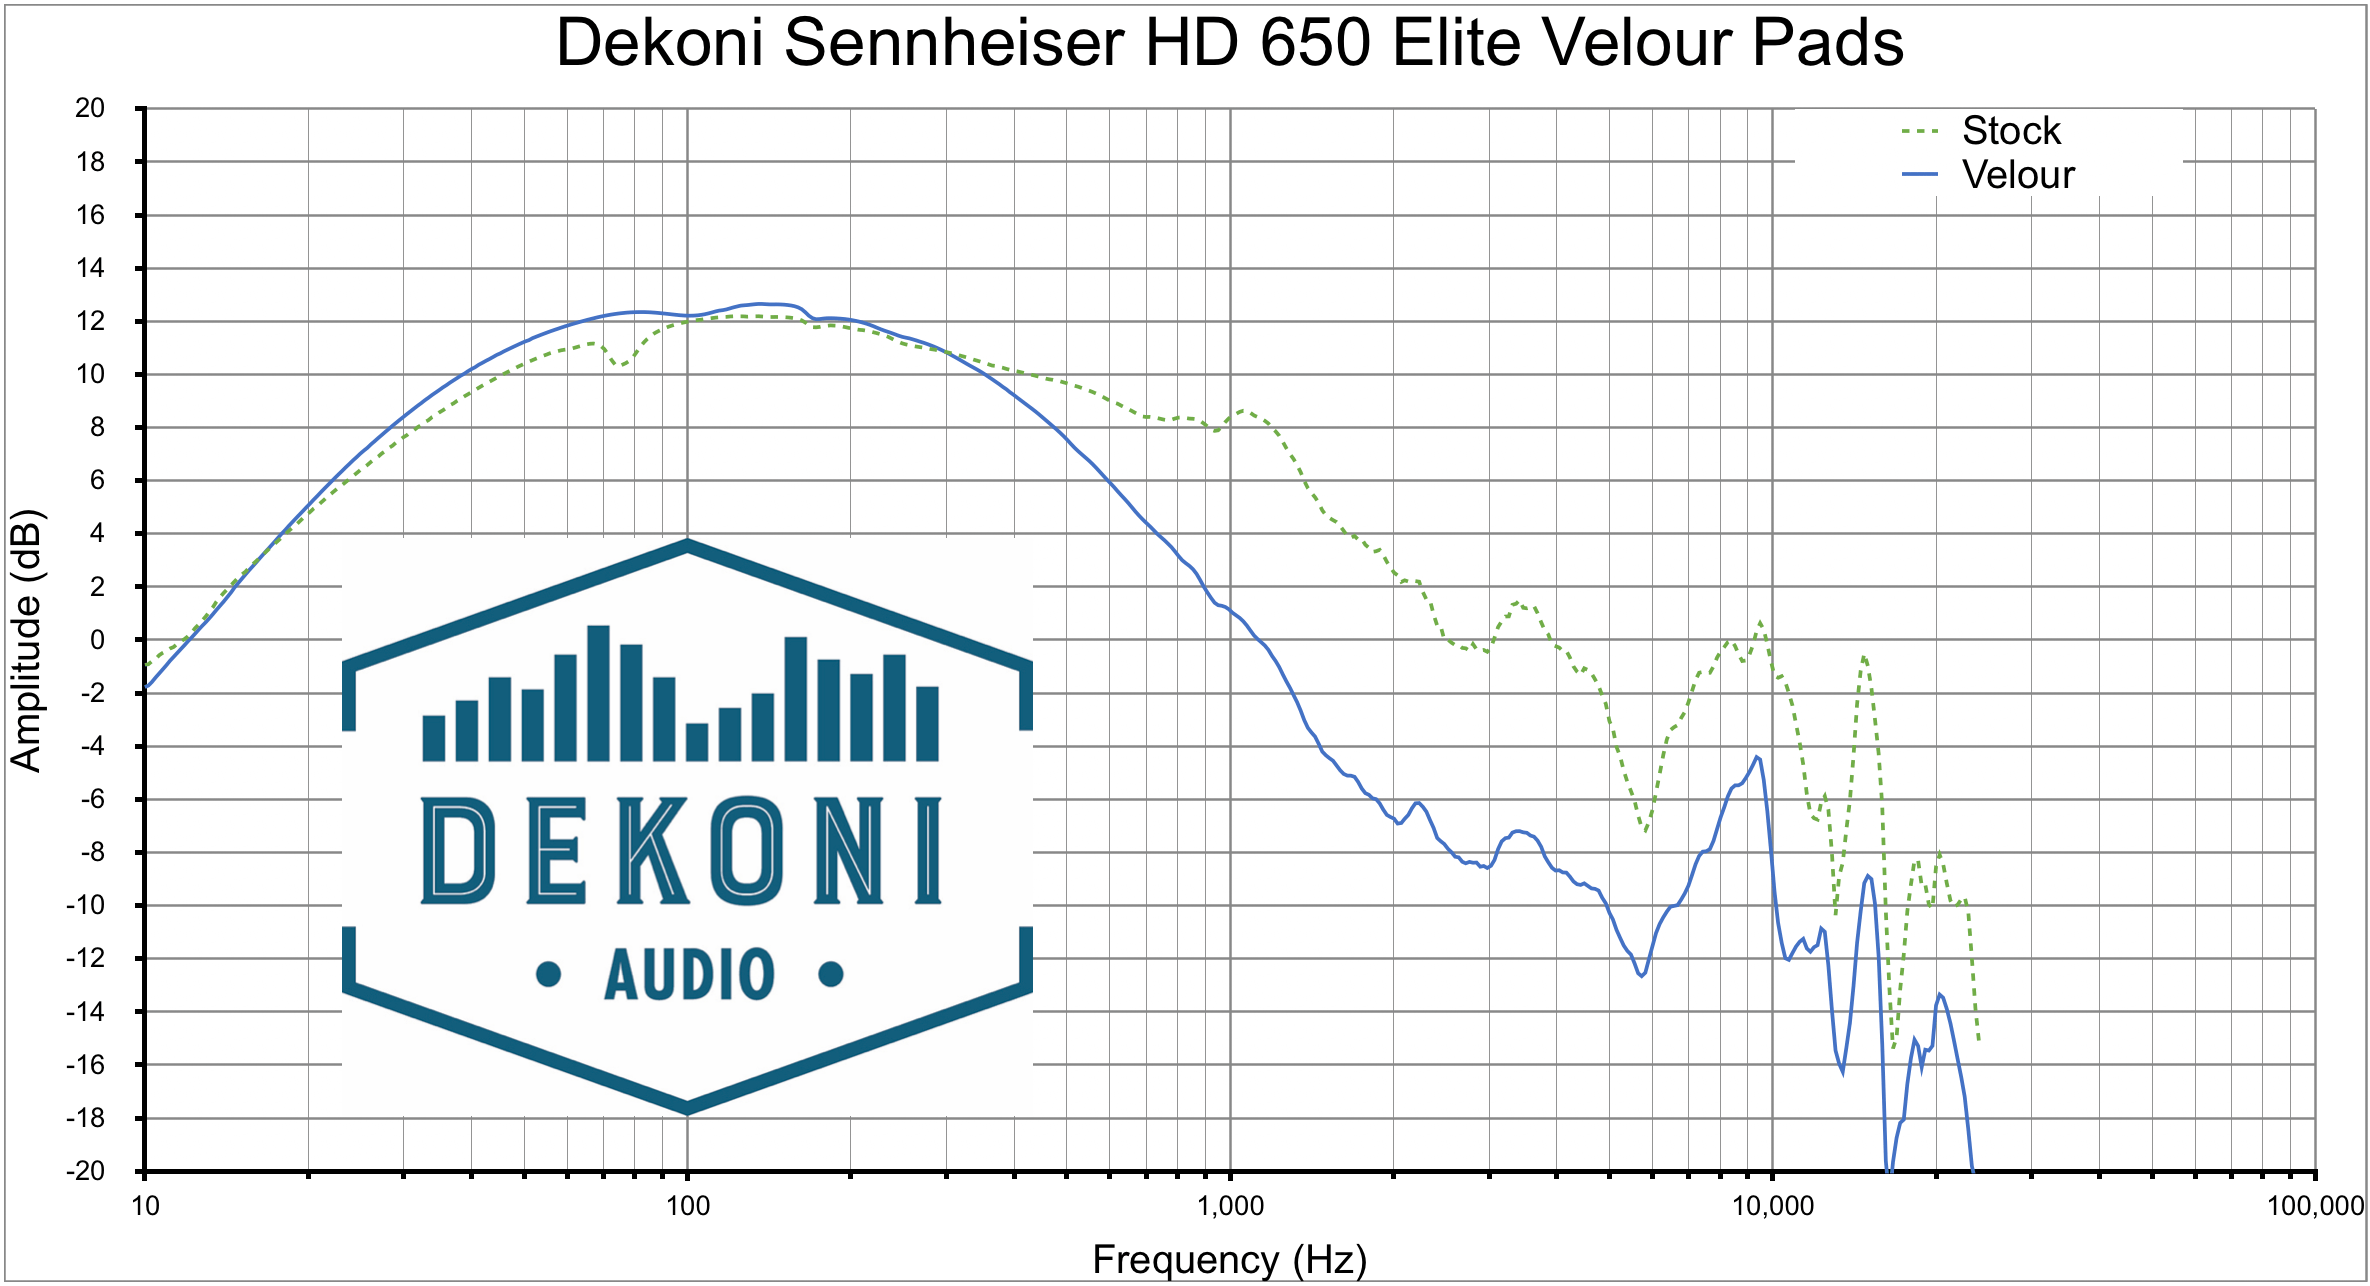 Dekoni HD 650 Vlr Graph